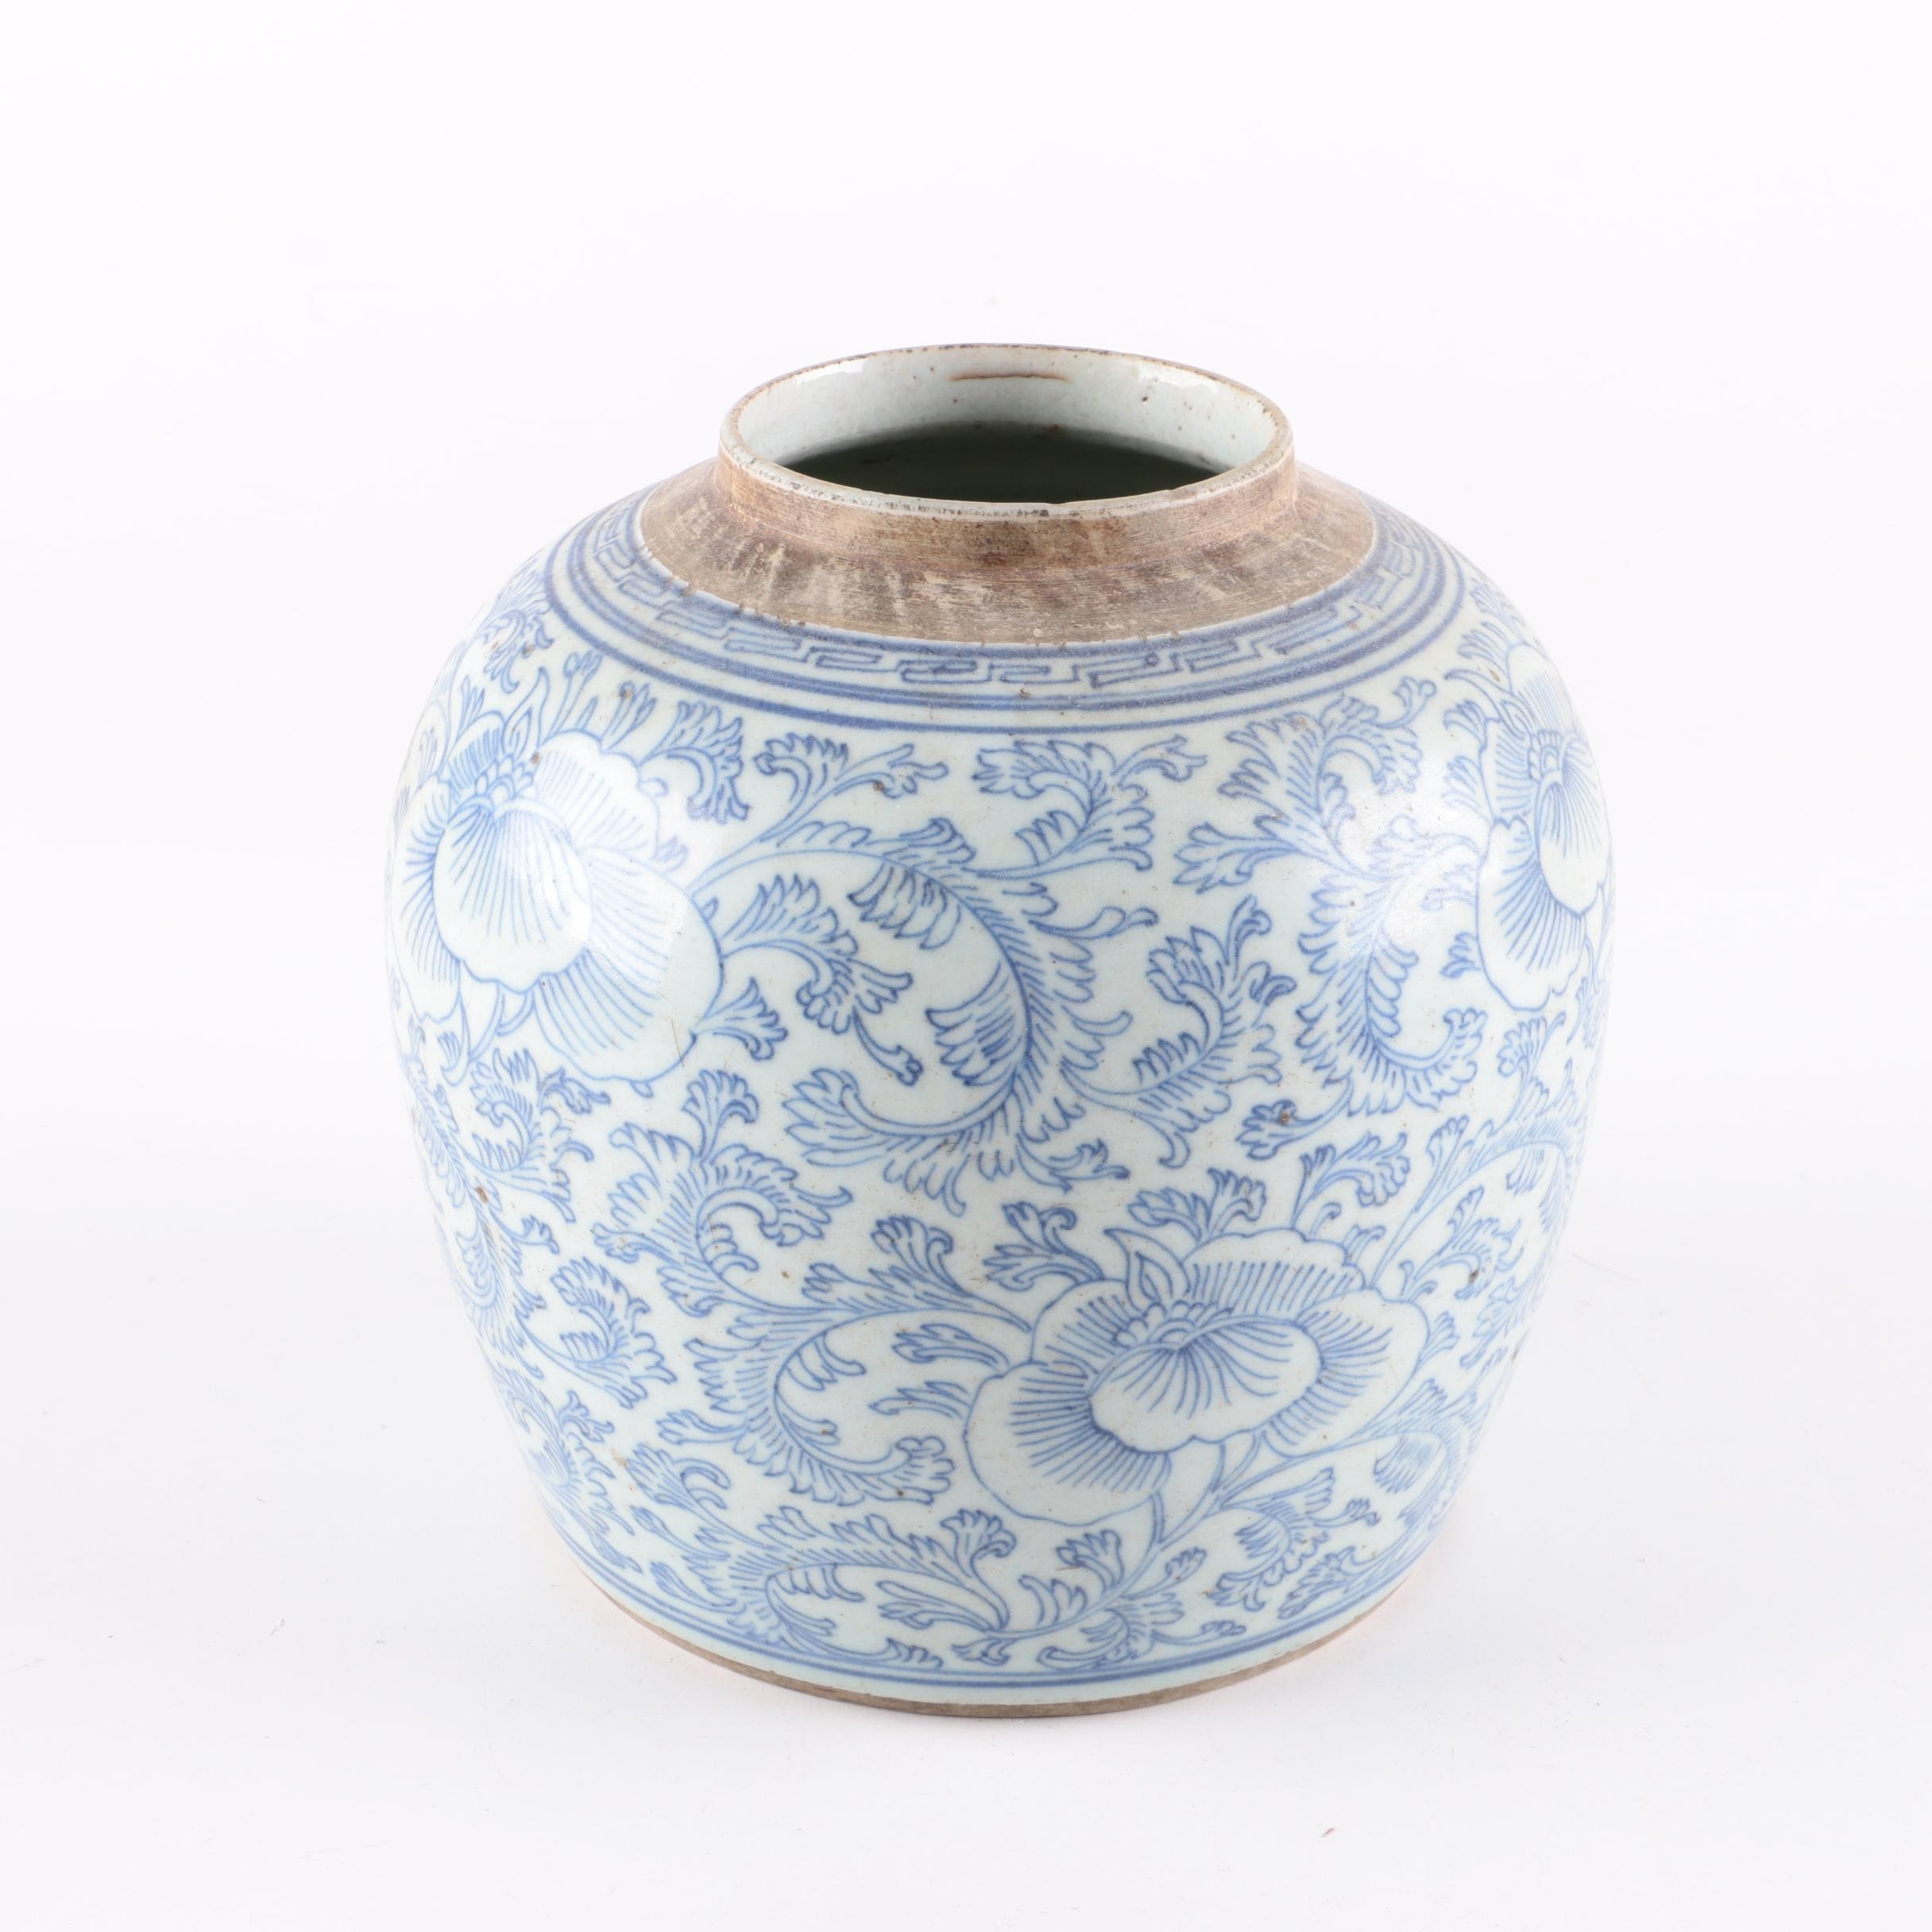 Antique Blue and White Chinese Vessel